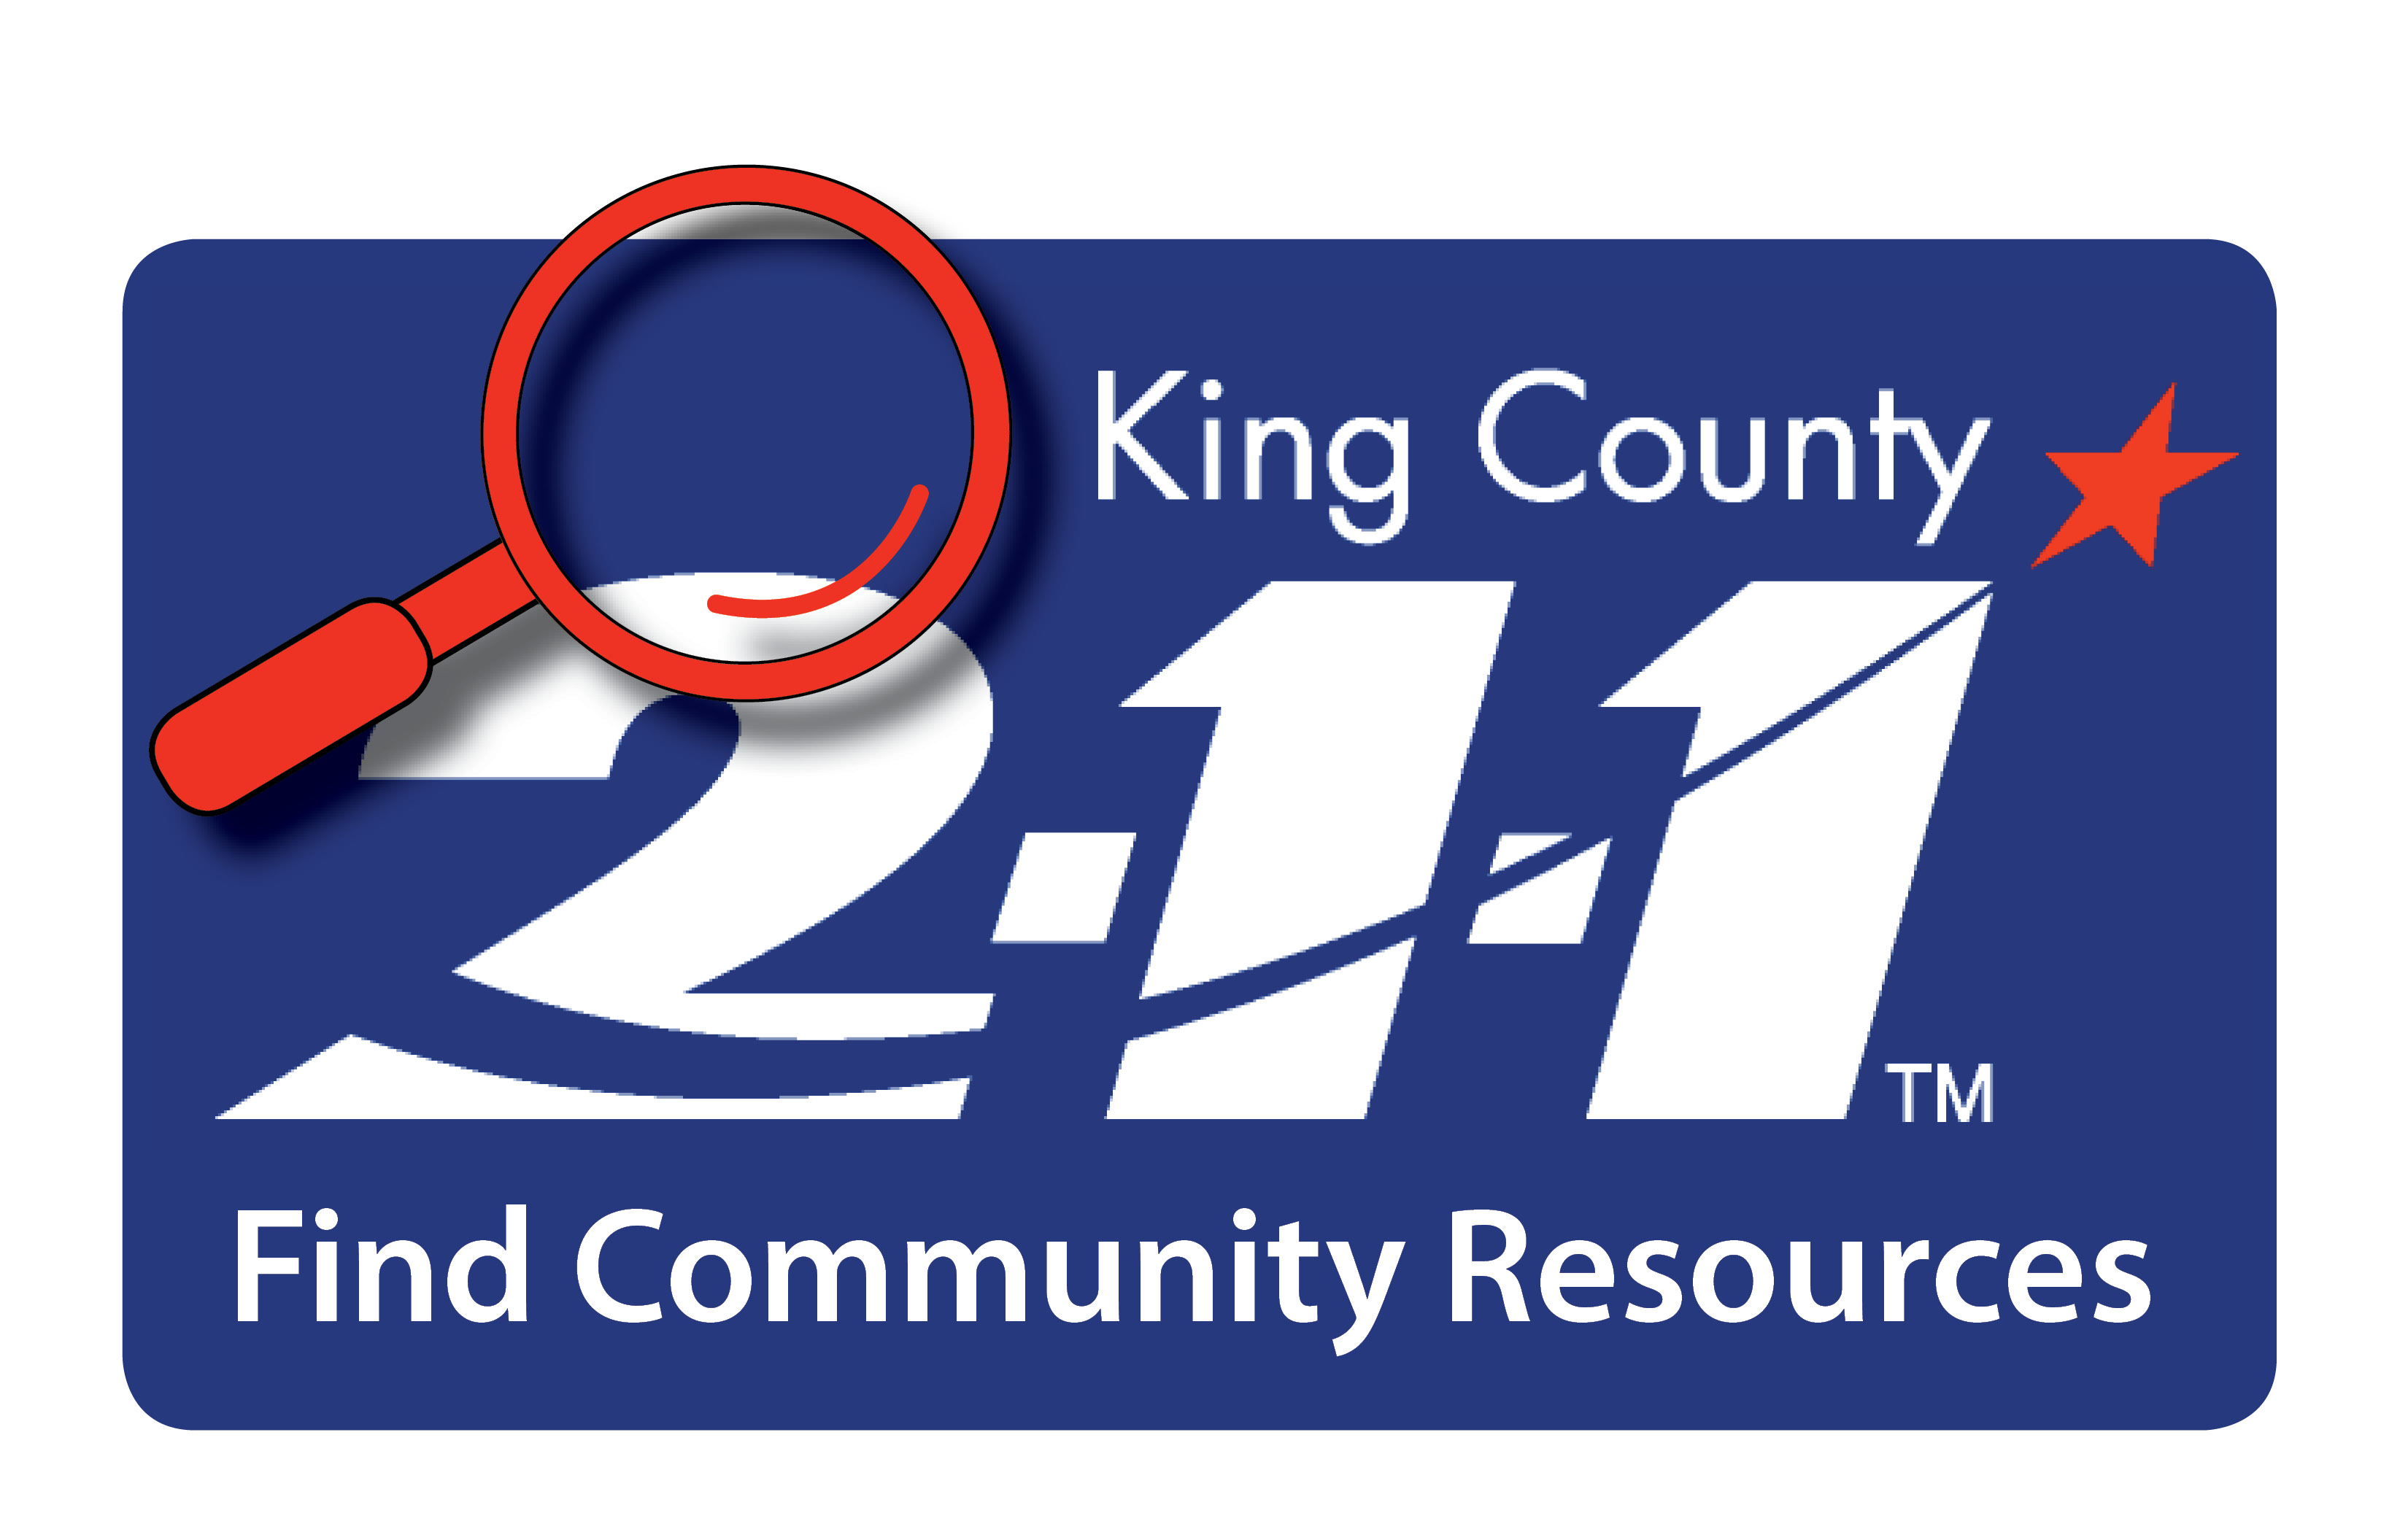 King County 211 - Find Community Services